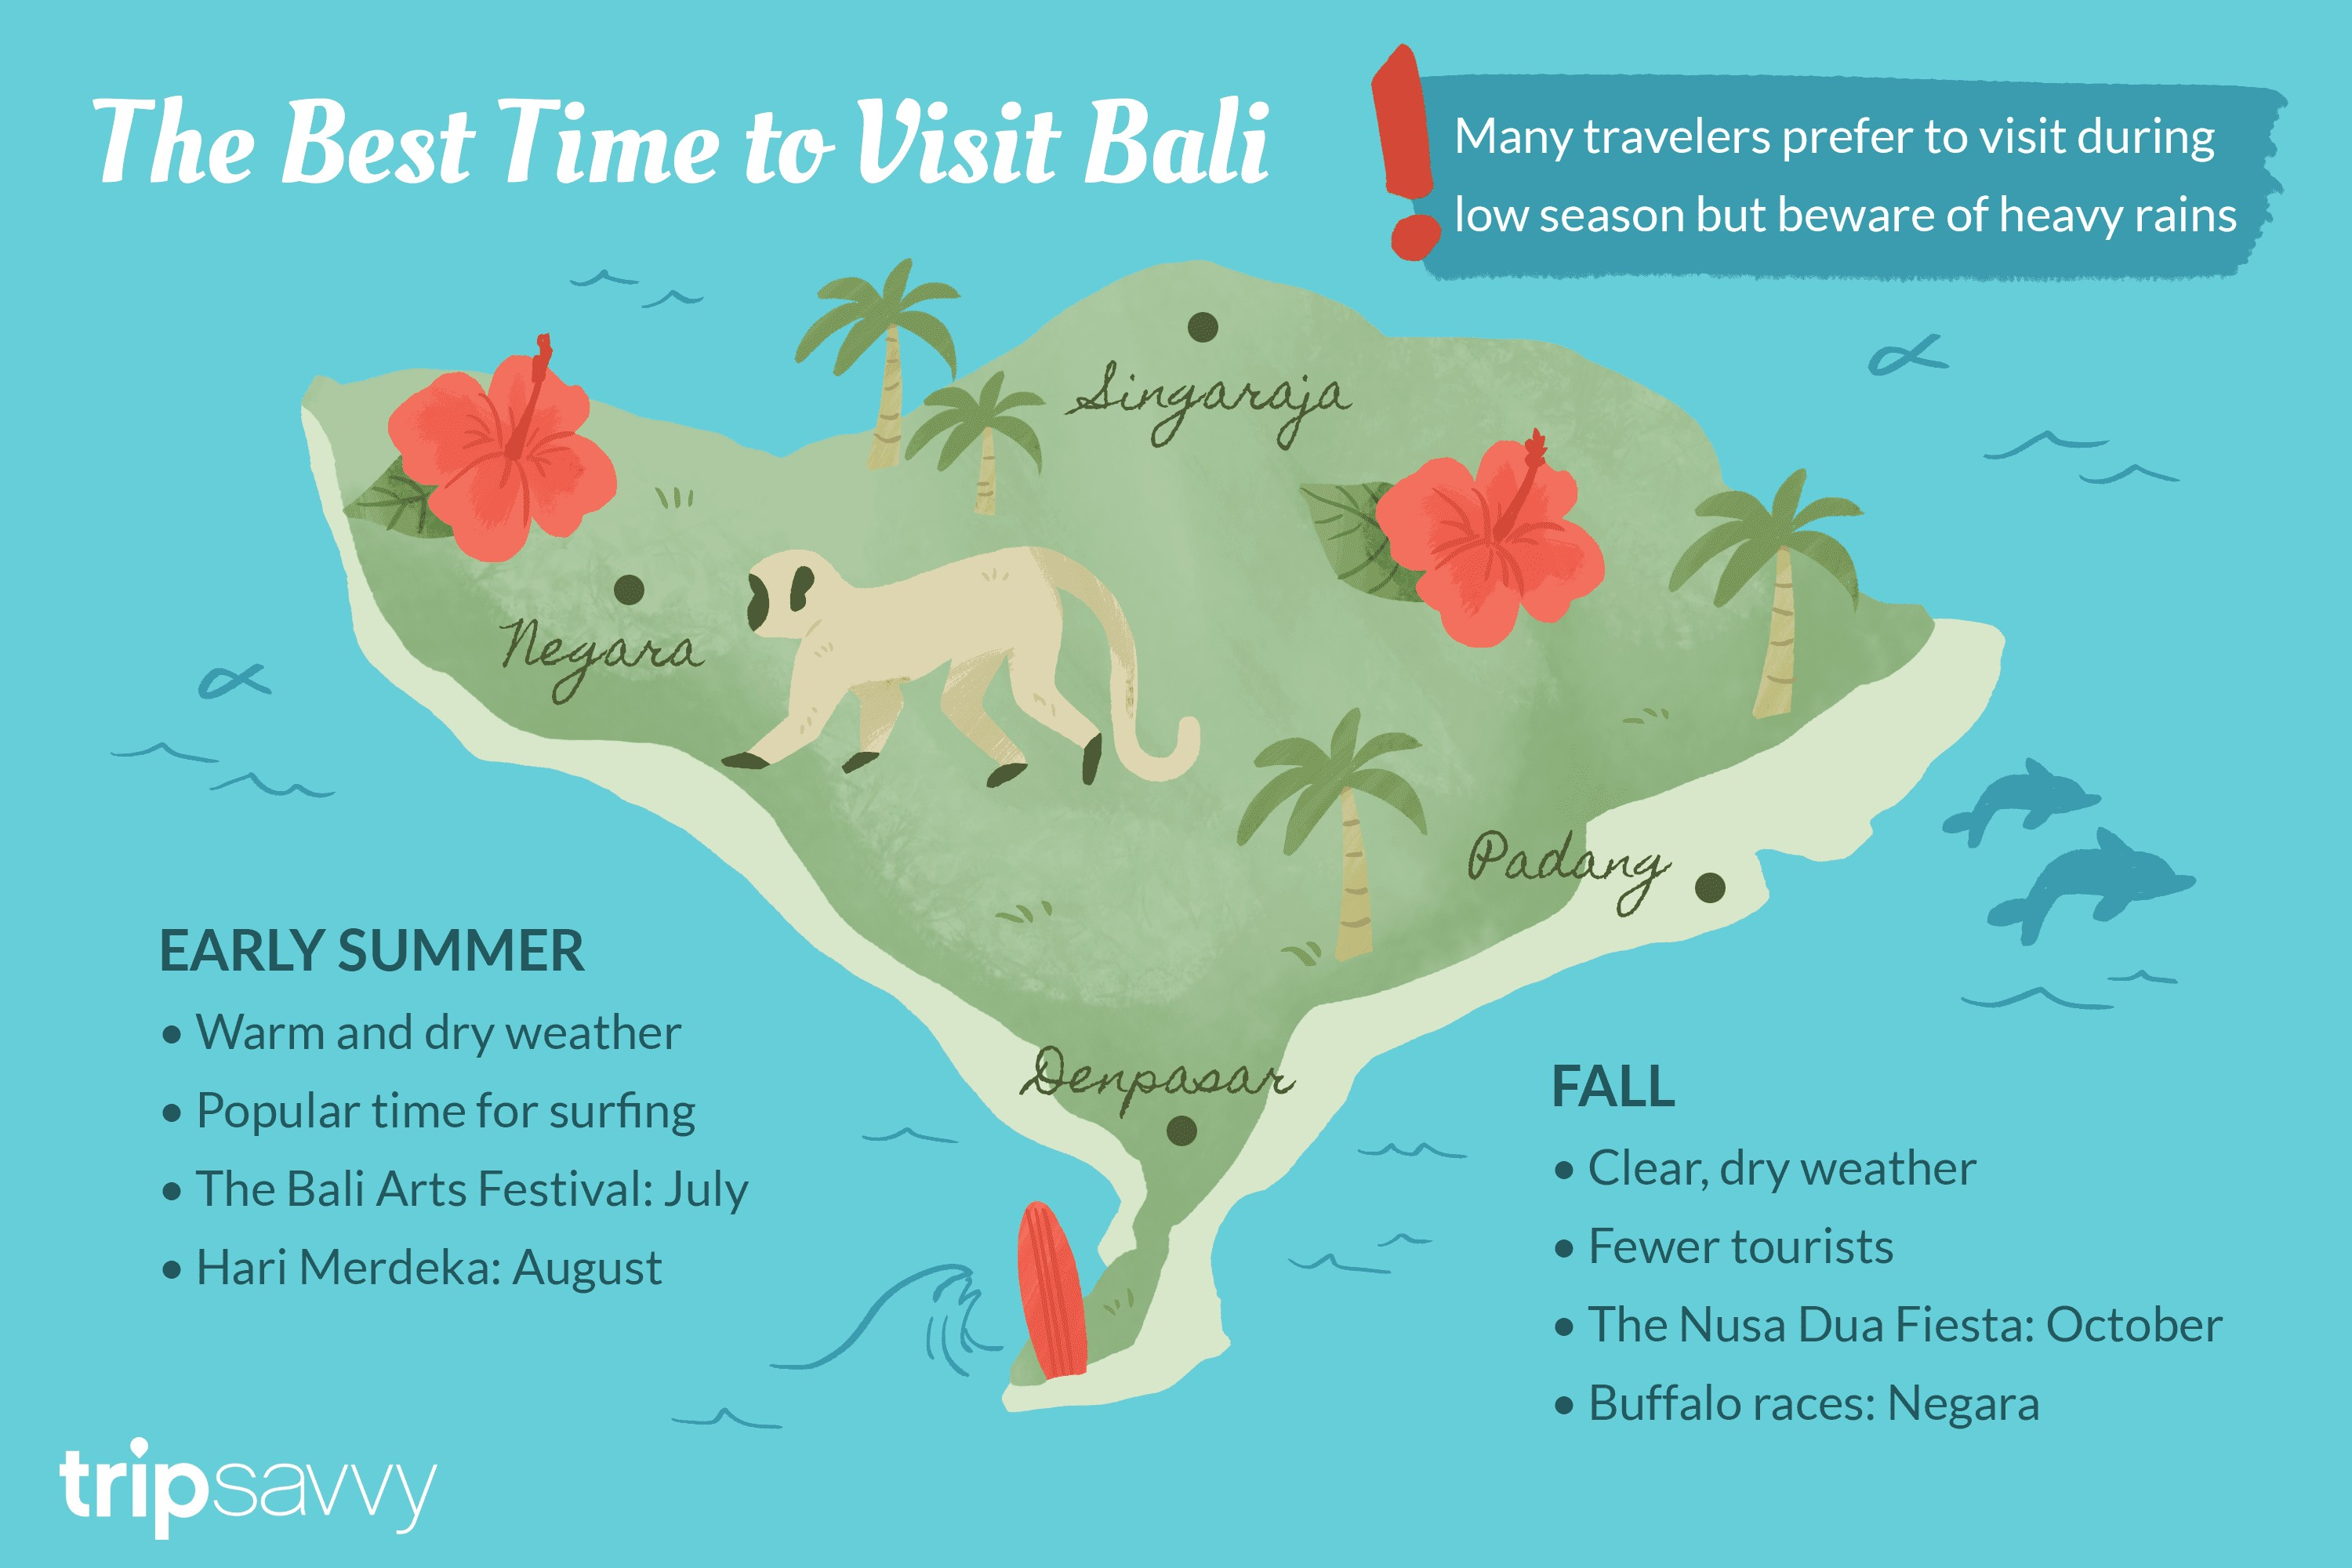 the best time to visit bali Final 5c33b5fdc9e77c0001c07b75